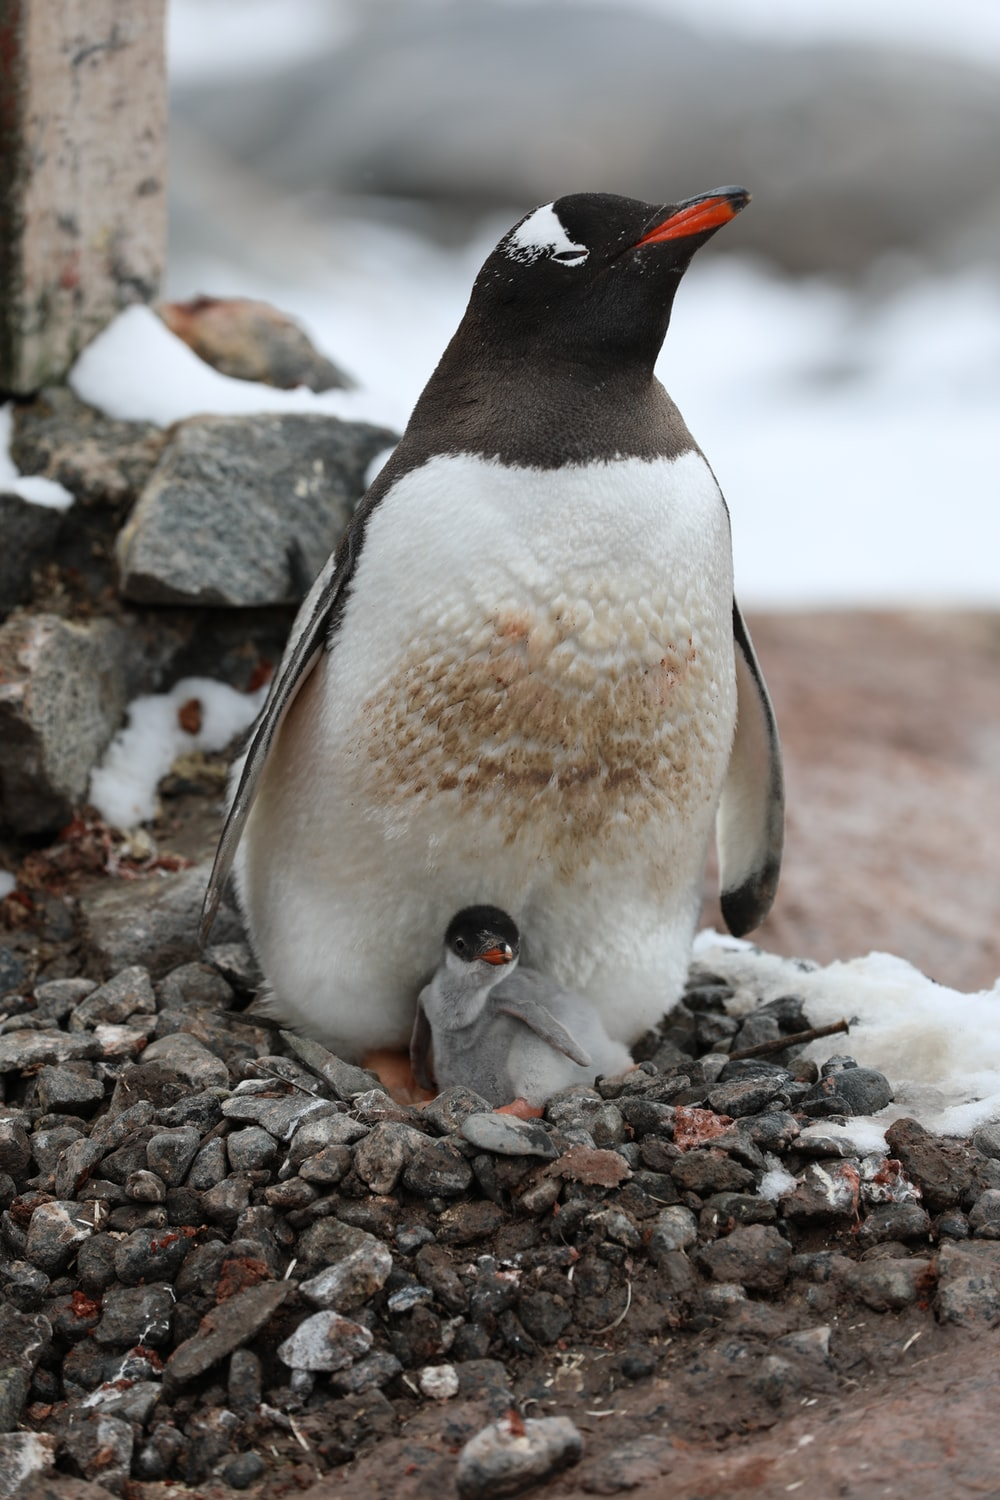 penguin on gray rocky ground during daytime